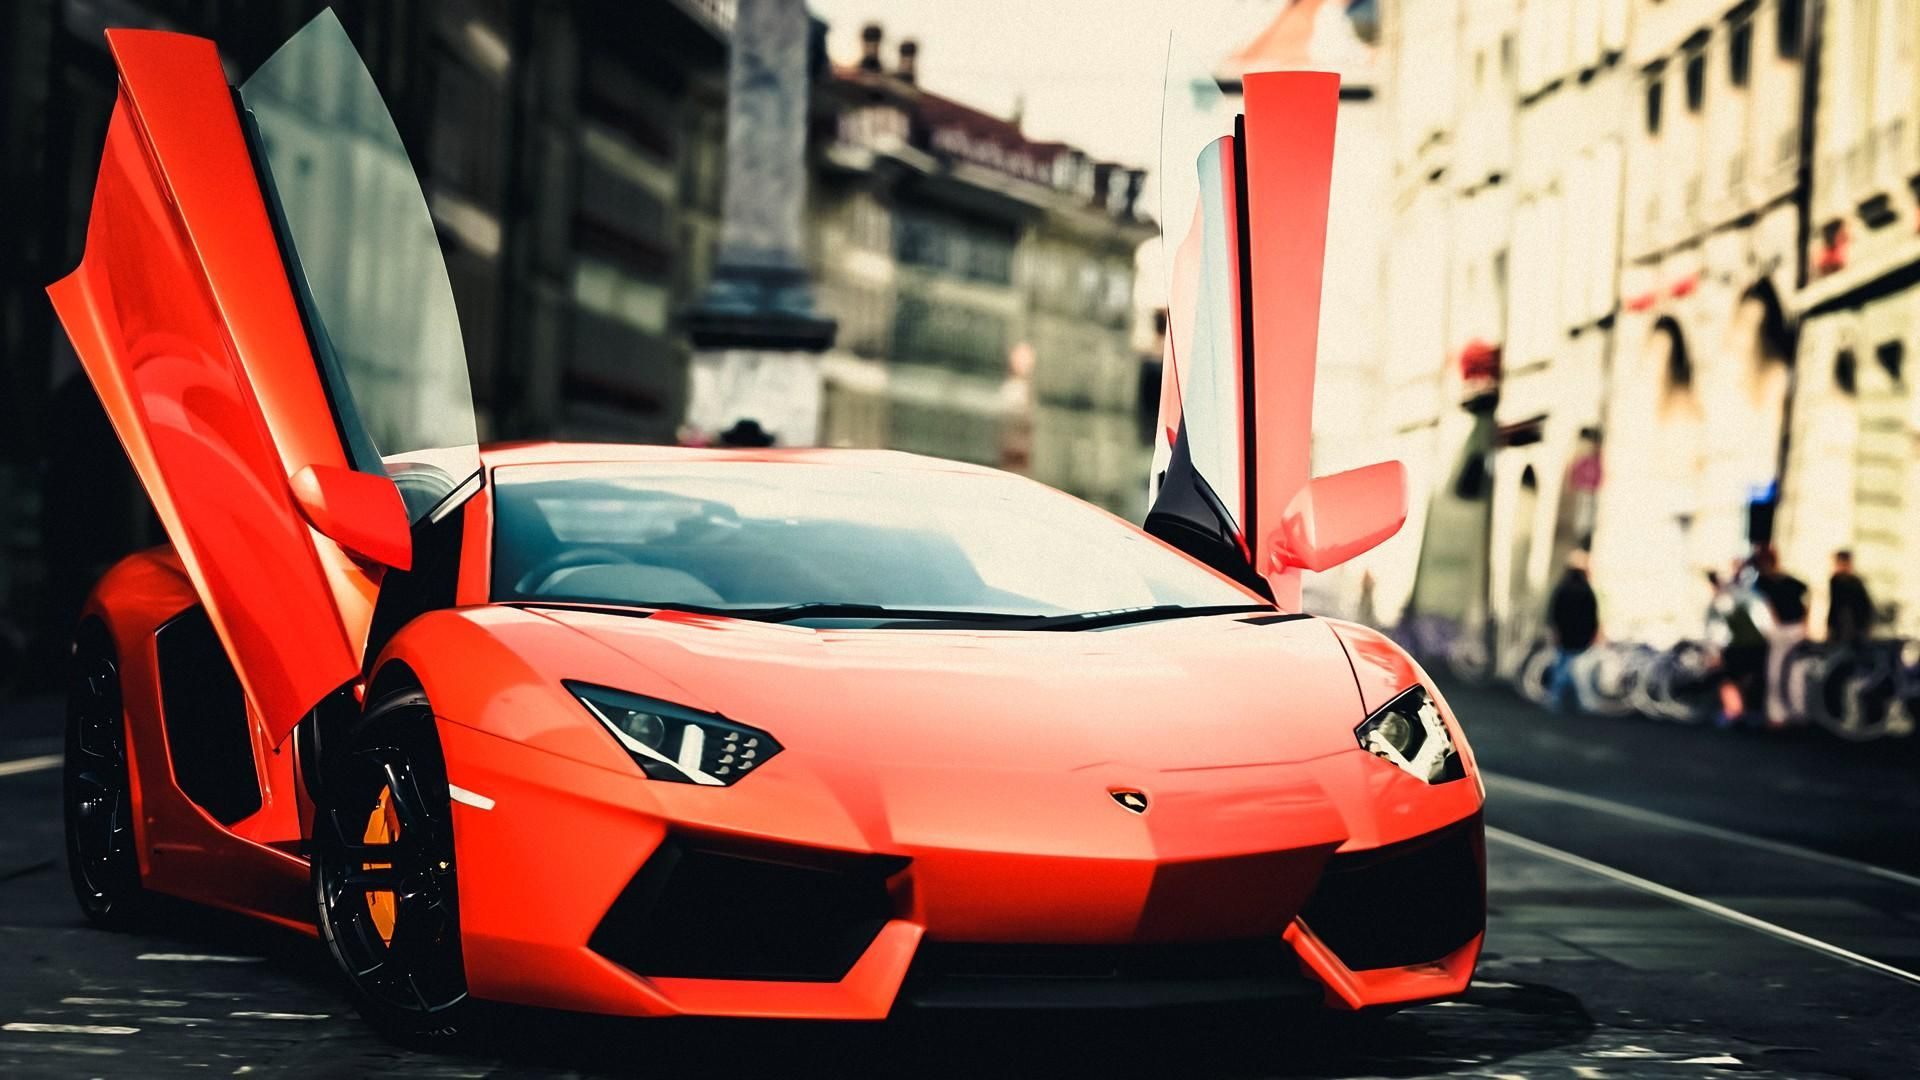 Lamborghini Wallpaper Wide Vehicles Wallpapers Pinterest Lamborghini Lamborghini